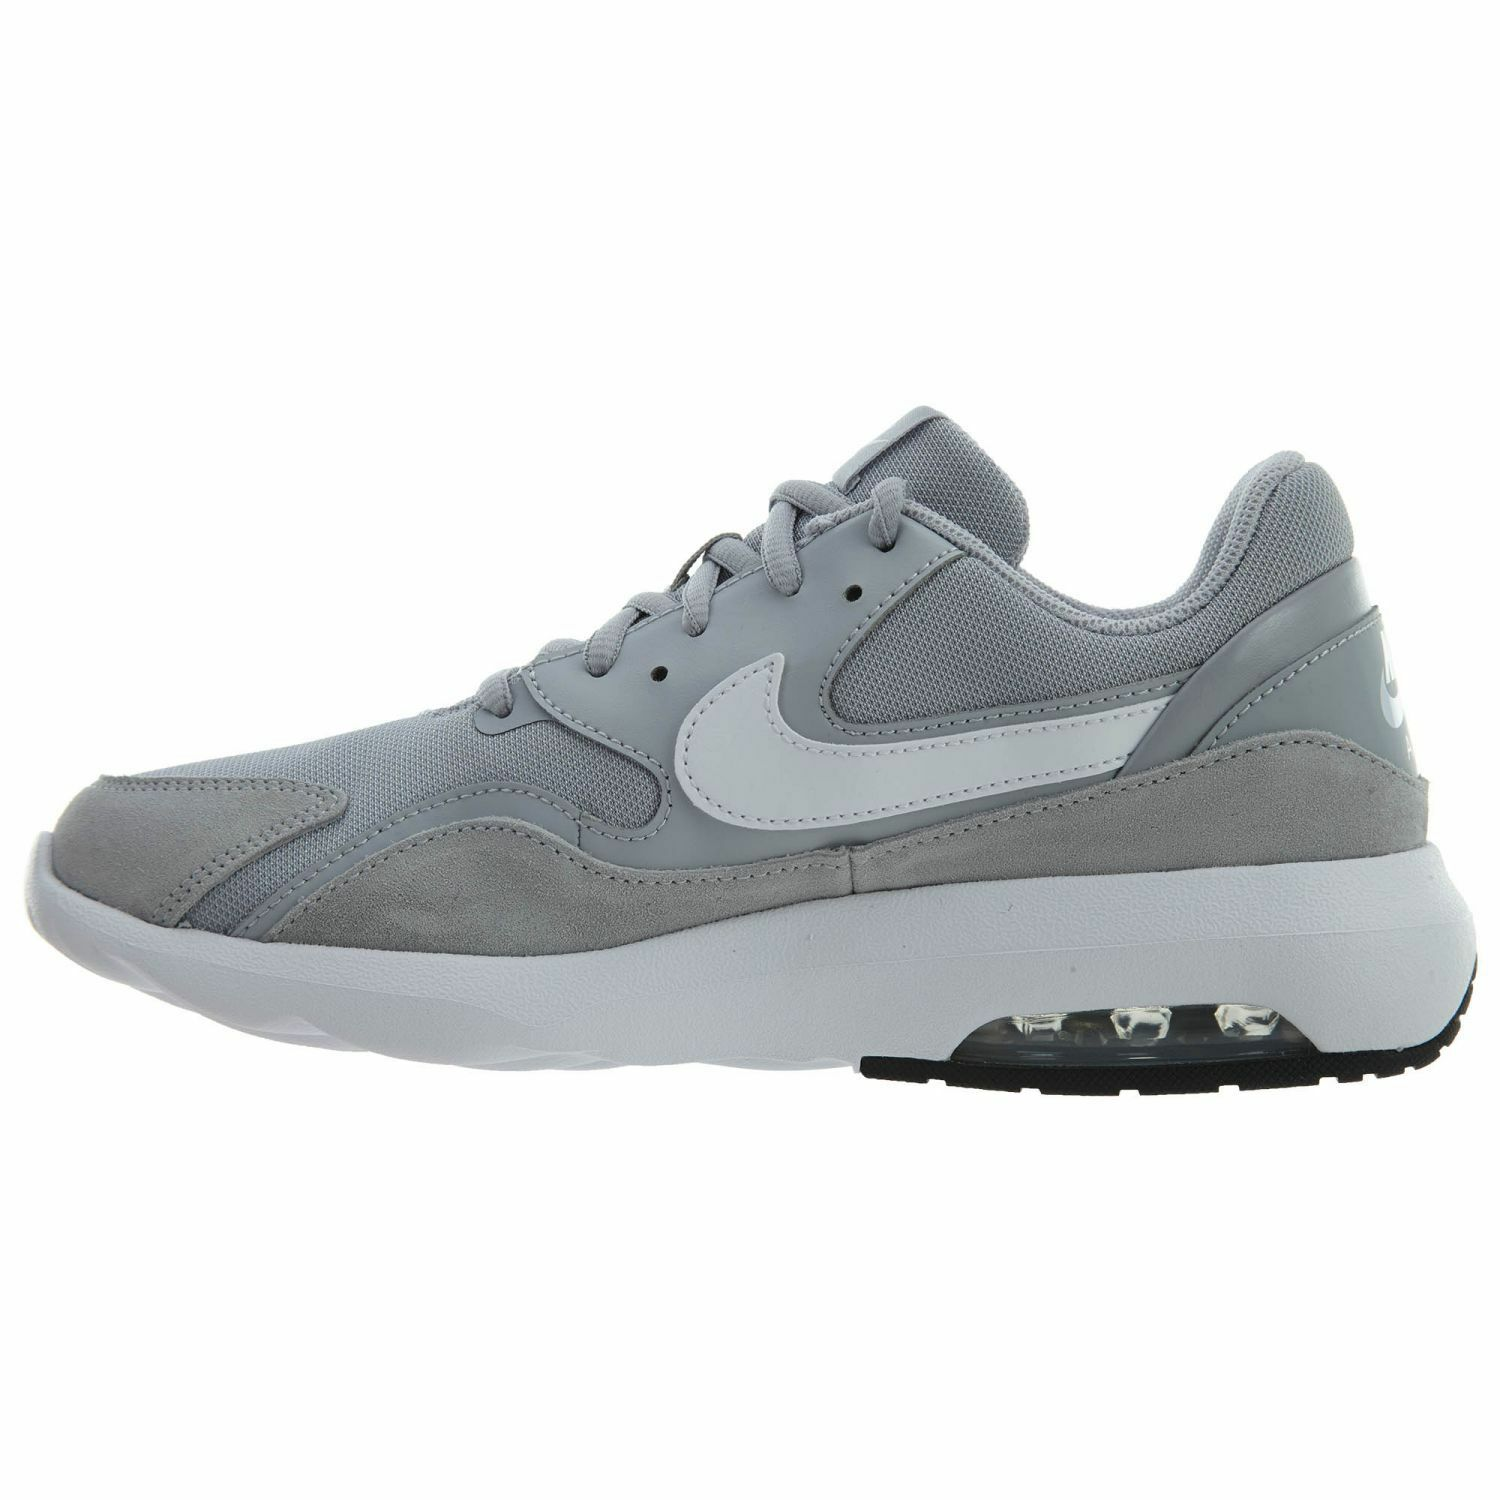 Nike Air Max Nostalgic Mens 916781-001 Wolf Grey White Running 9 Shoes Size 9 Running c1f236